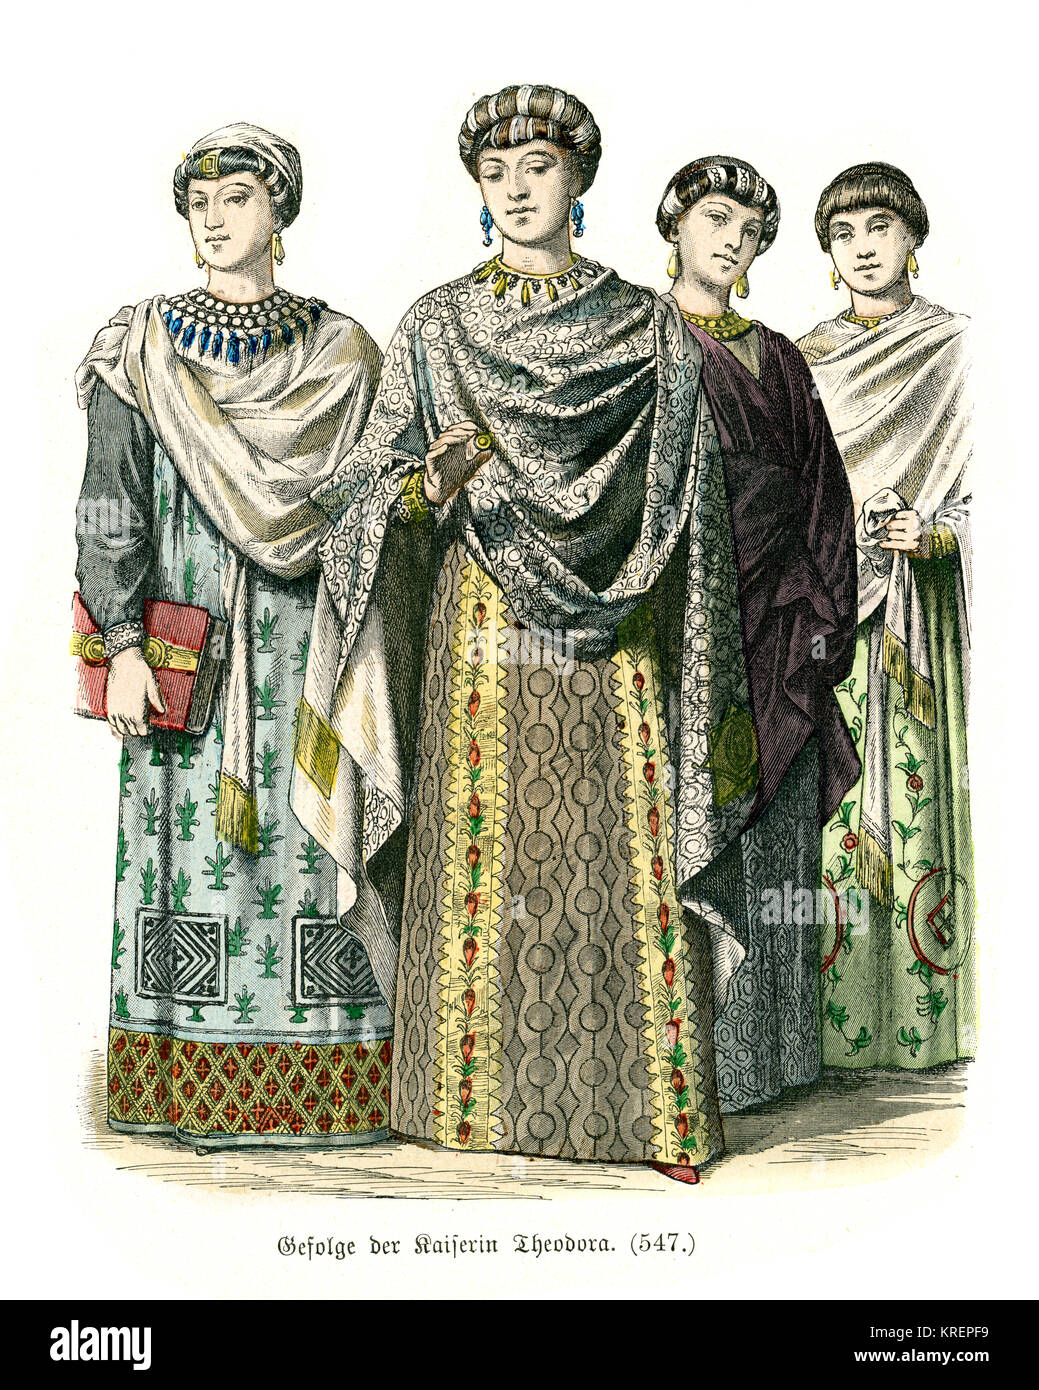 Vintage engraving of Fashions of the Byzantine Empire, 6th Century. Retinue of the Empress Theodora - Stock Image